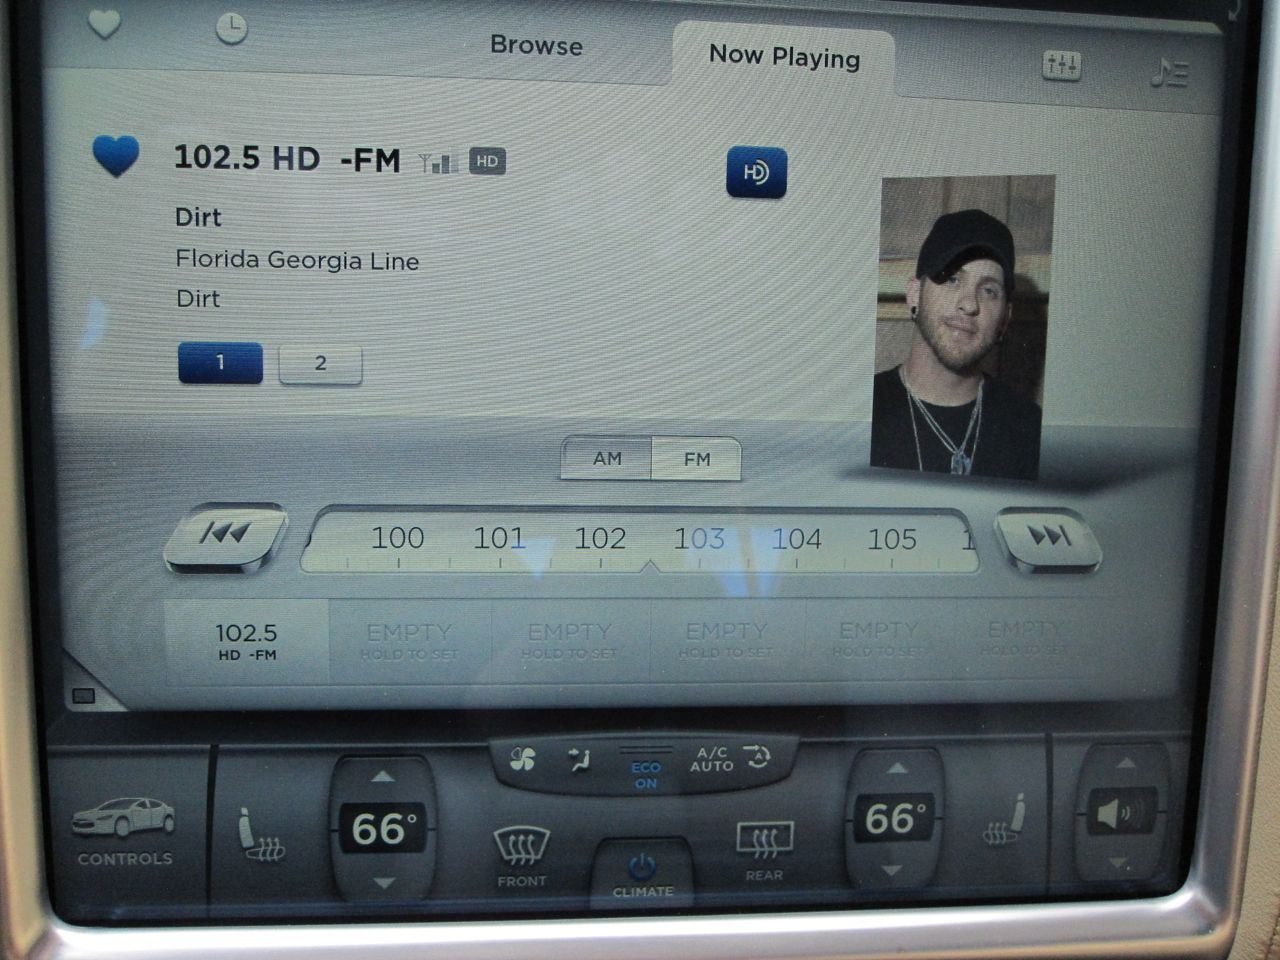 Tune in to AM/FM Radio on the Model S - Tesla Living